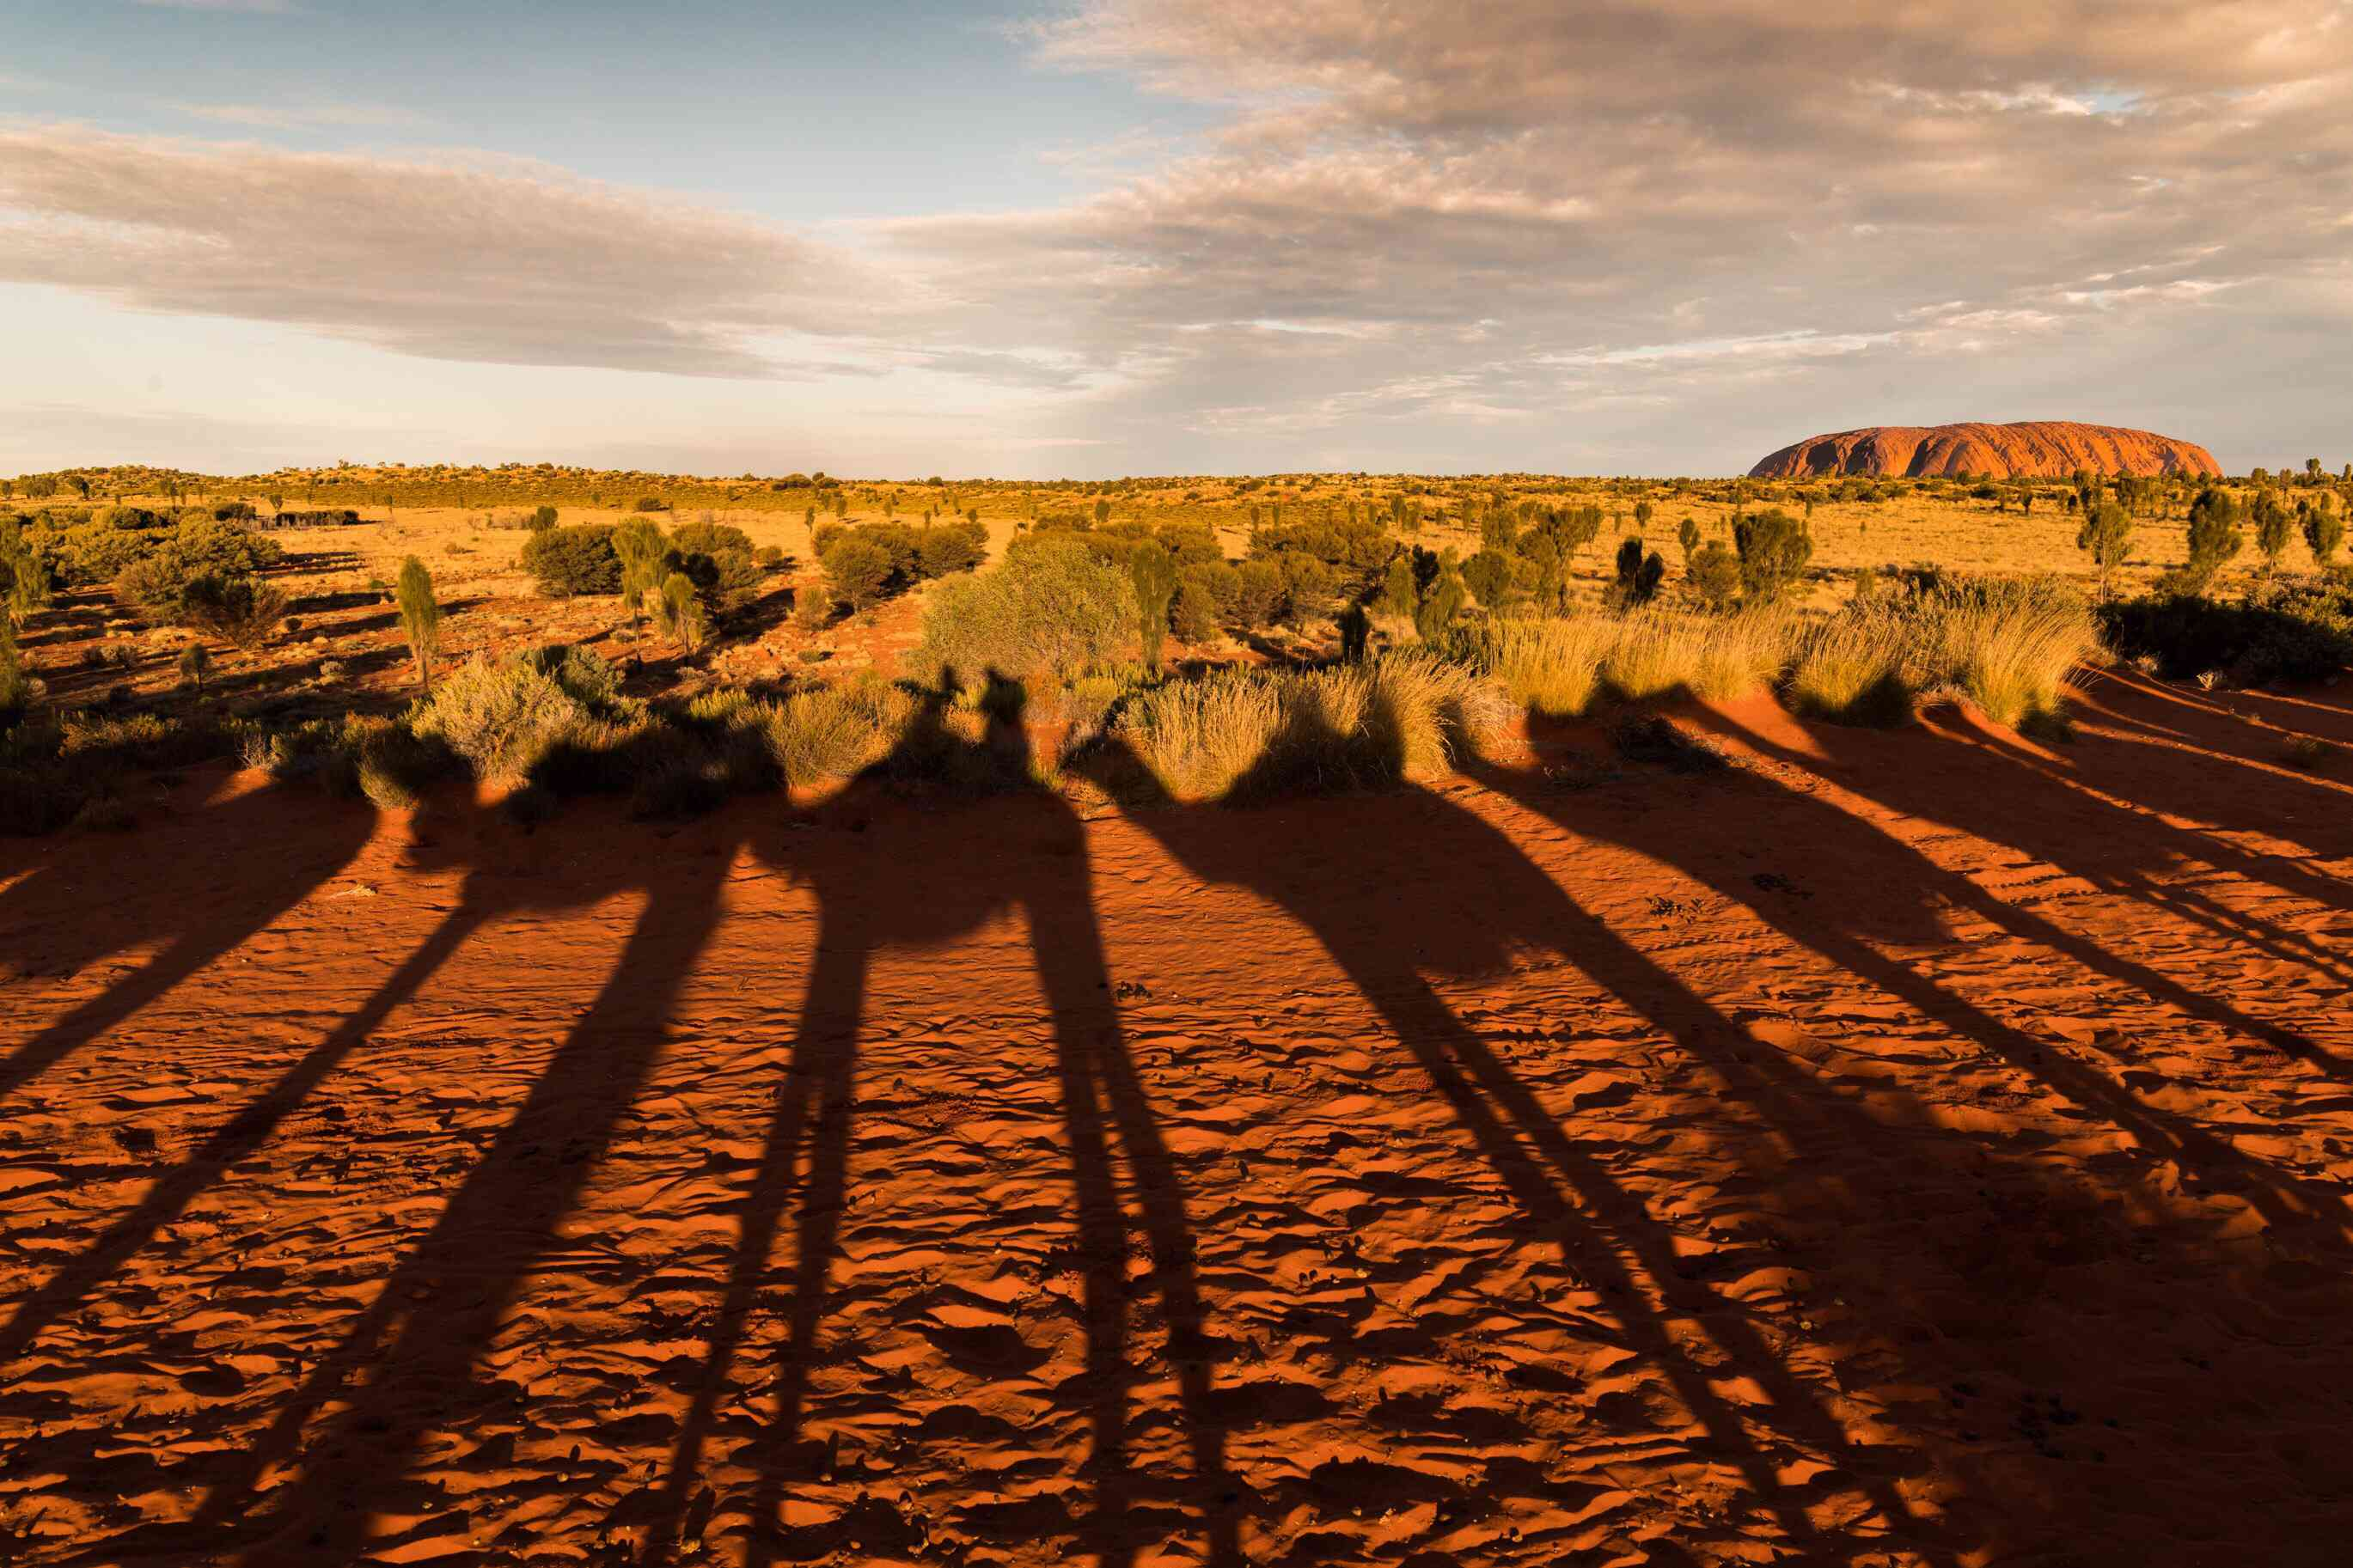 Uluru with shadows of camels in the foreground